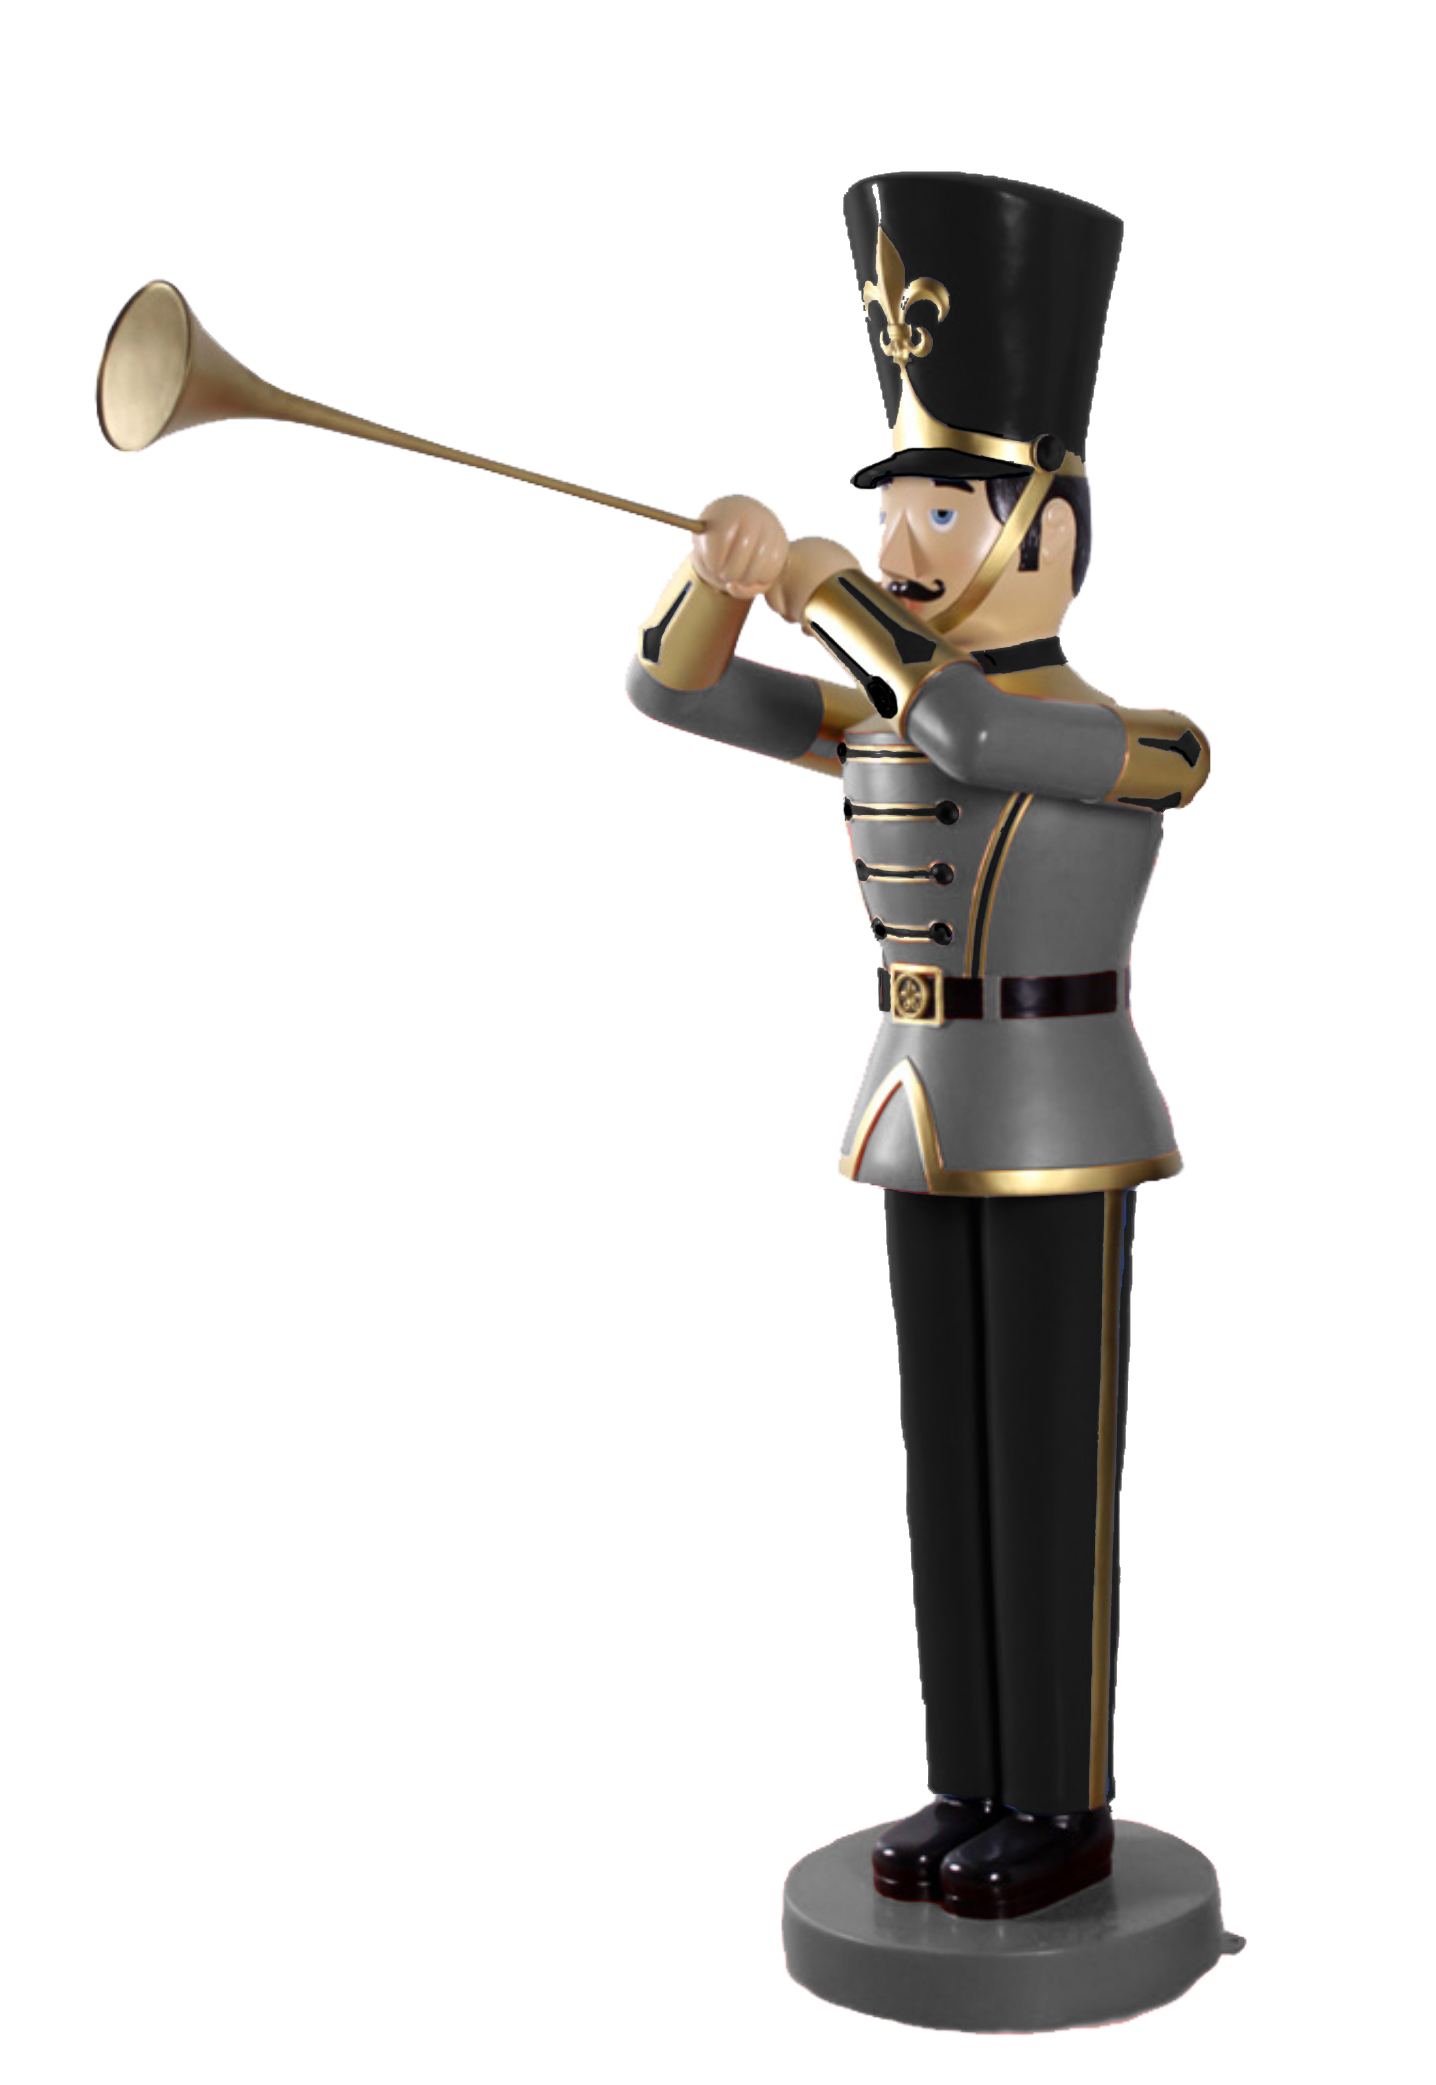 6' BLACK /WHITE TOY SOLDIER WITH TRUMPET